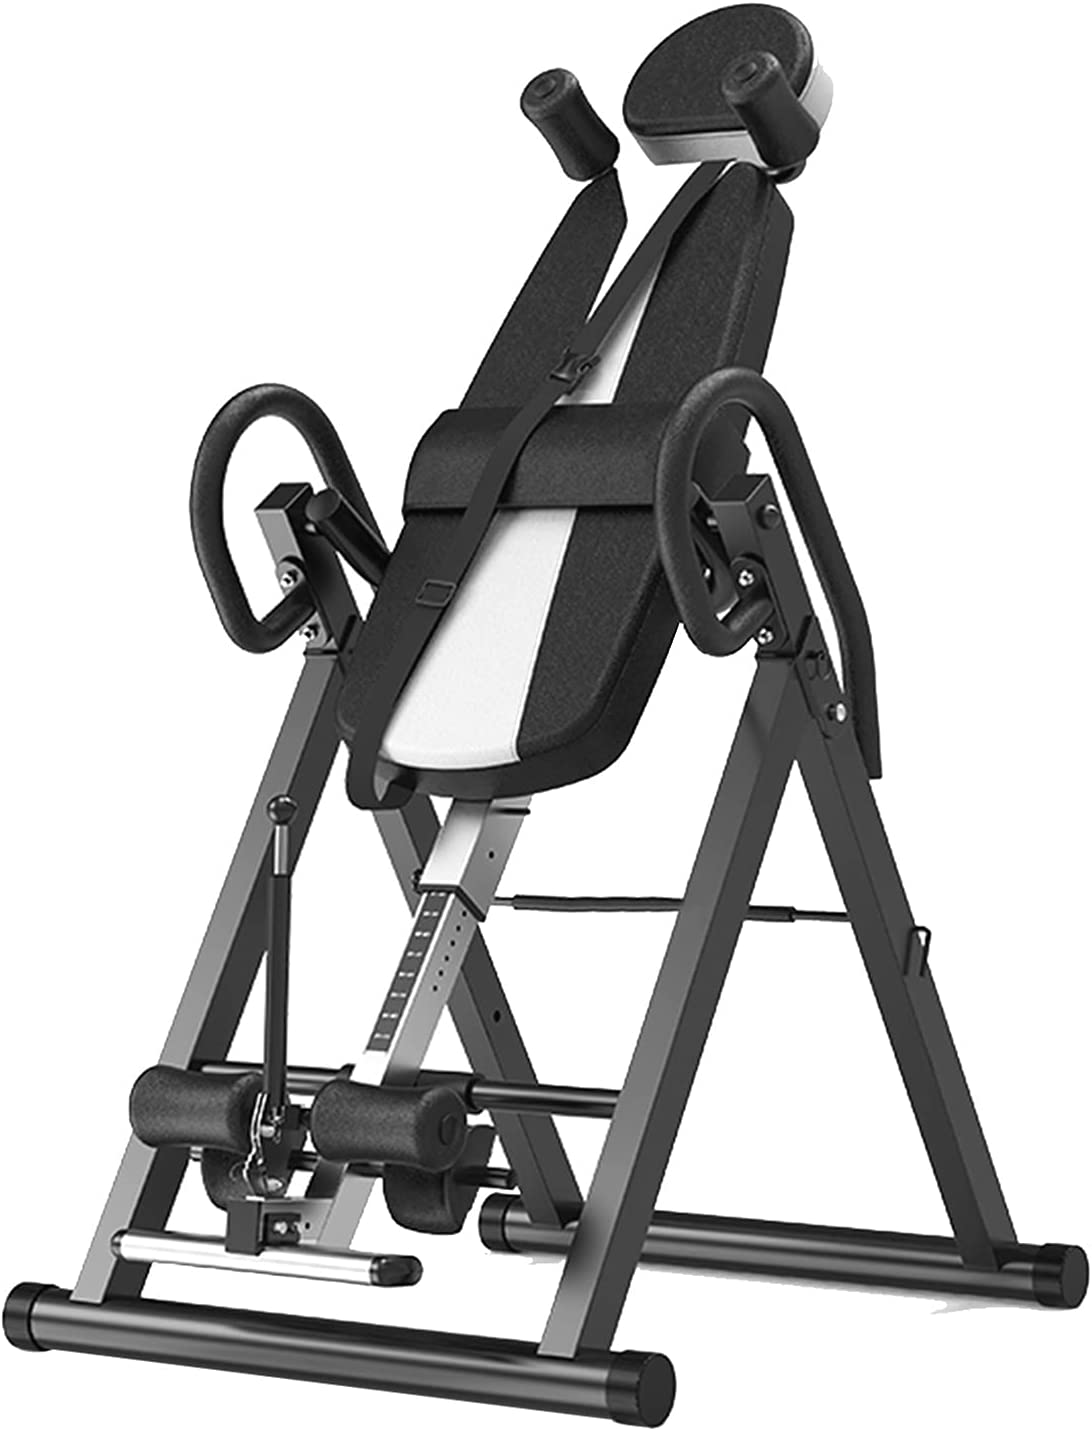 YOT Inversion Table Foldable for Gravity Manufacturer OFFicial shop Storage Milwaukee Mall Adjustable Tabl